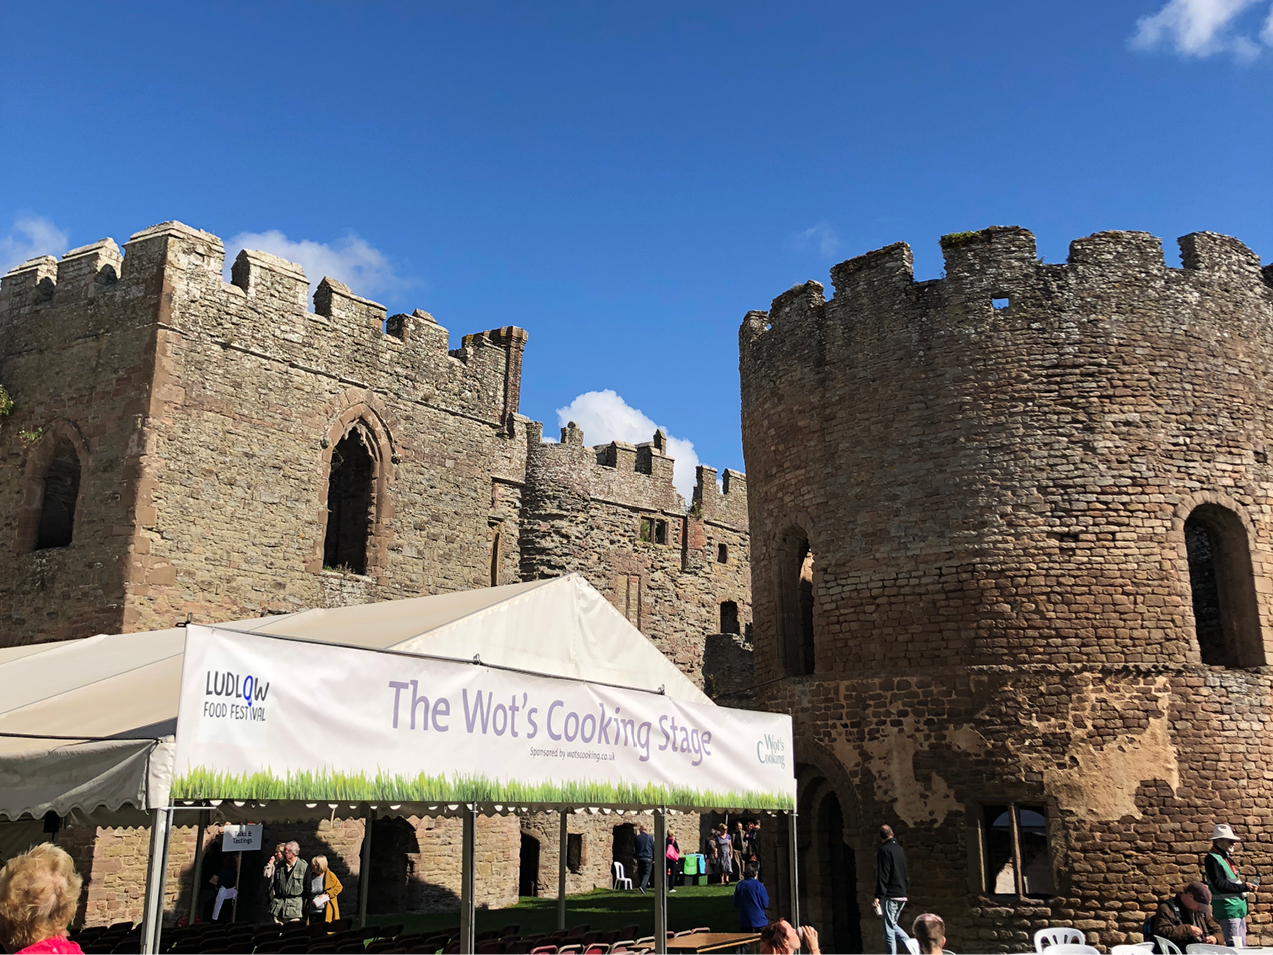 Ludlow Food Festival Digital Marketing